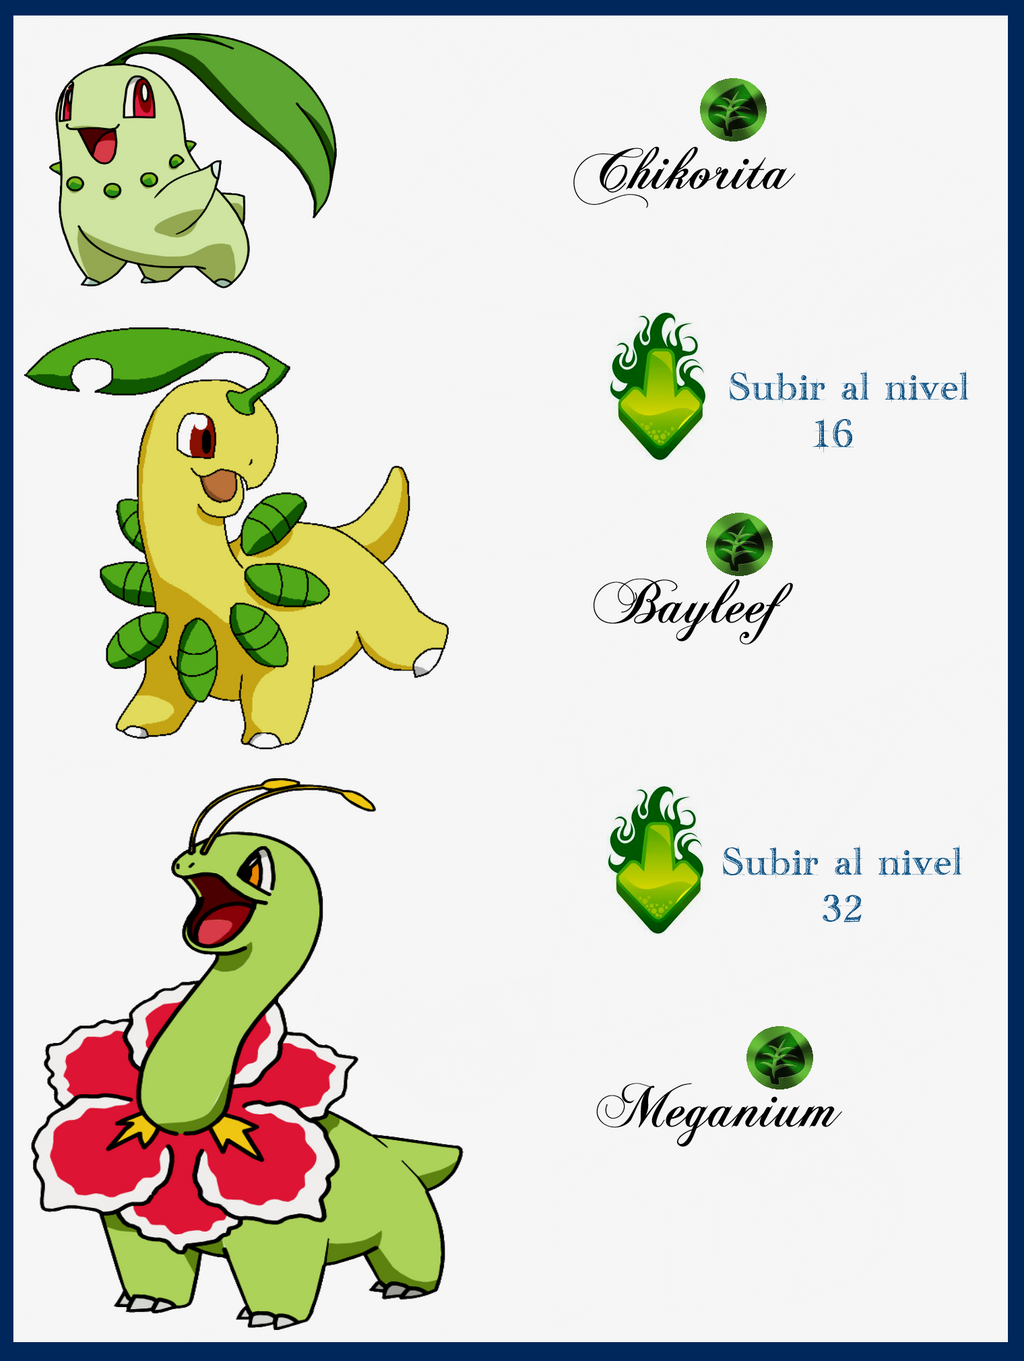 flabebe evolution chart